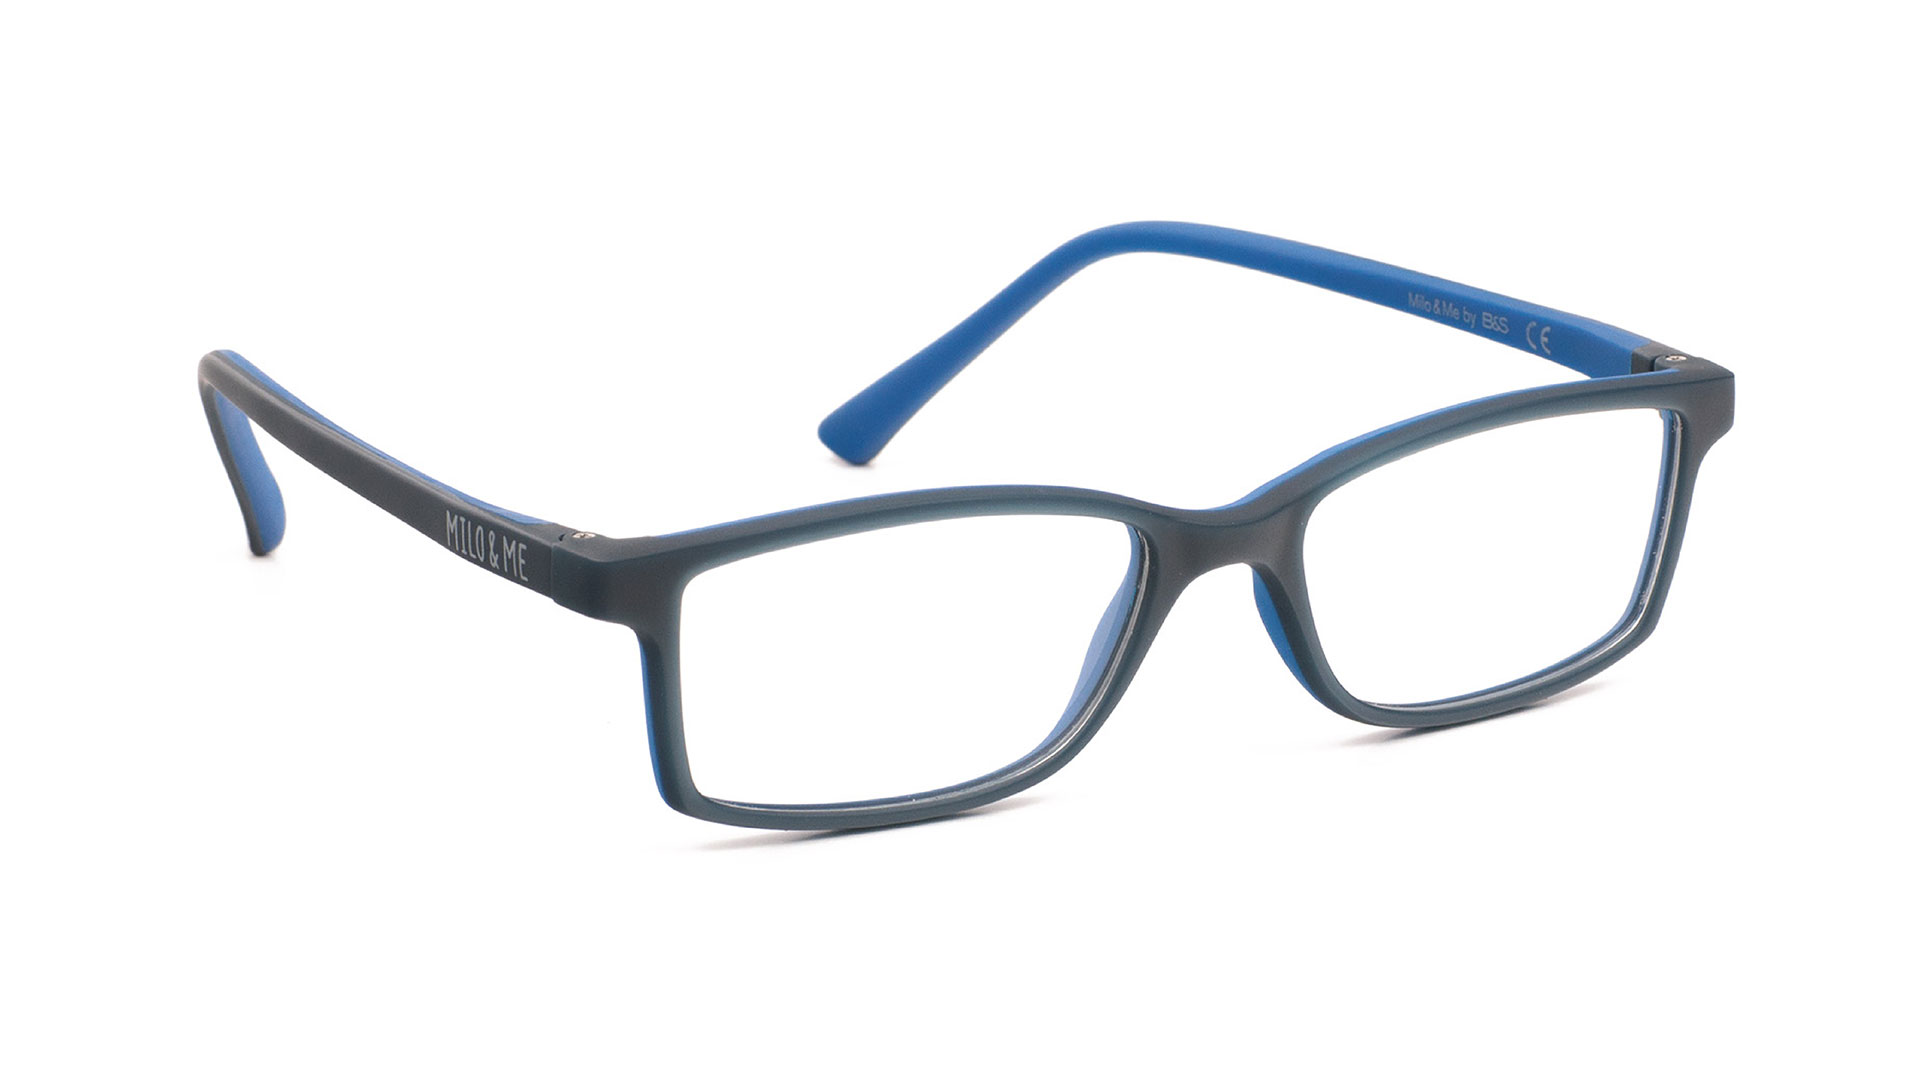 Blue GreyBlue H85011-01 - Milo & Me Eyewear - Optimum RX Lens Specialists